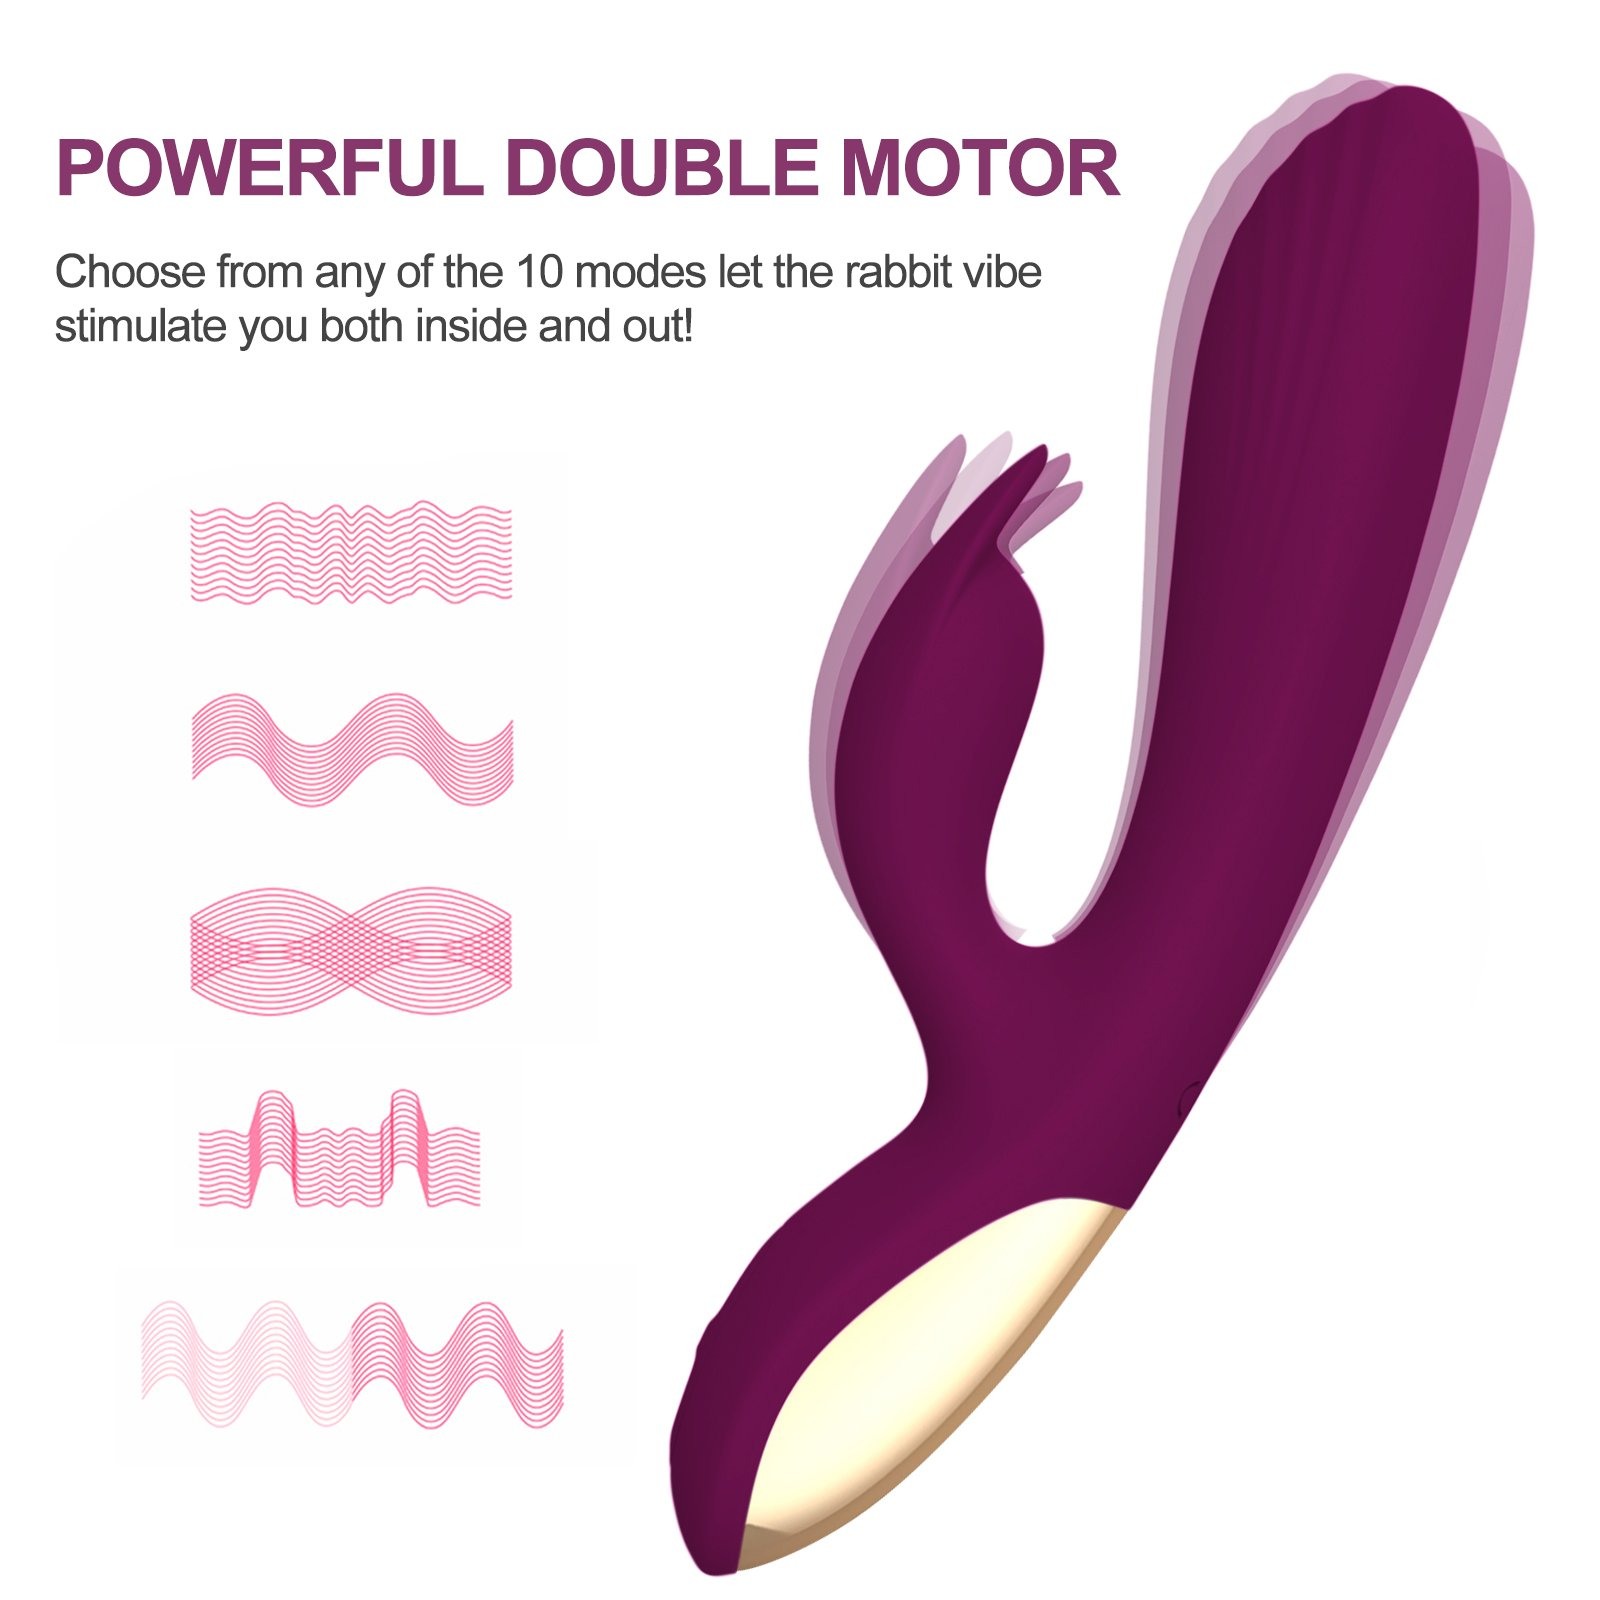 Silicone Rabbit G-Spot Vibrator, Tracy\'s Dog 10 Speed Waterproof Vibrating Massager Rechargeable Vagina Clitoral Stimulator Adult Sex Toy for Women Lesbian